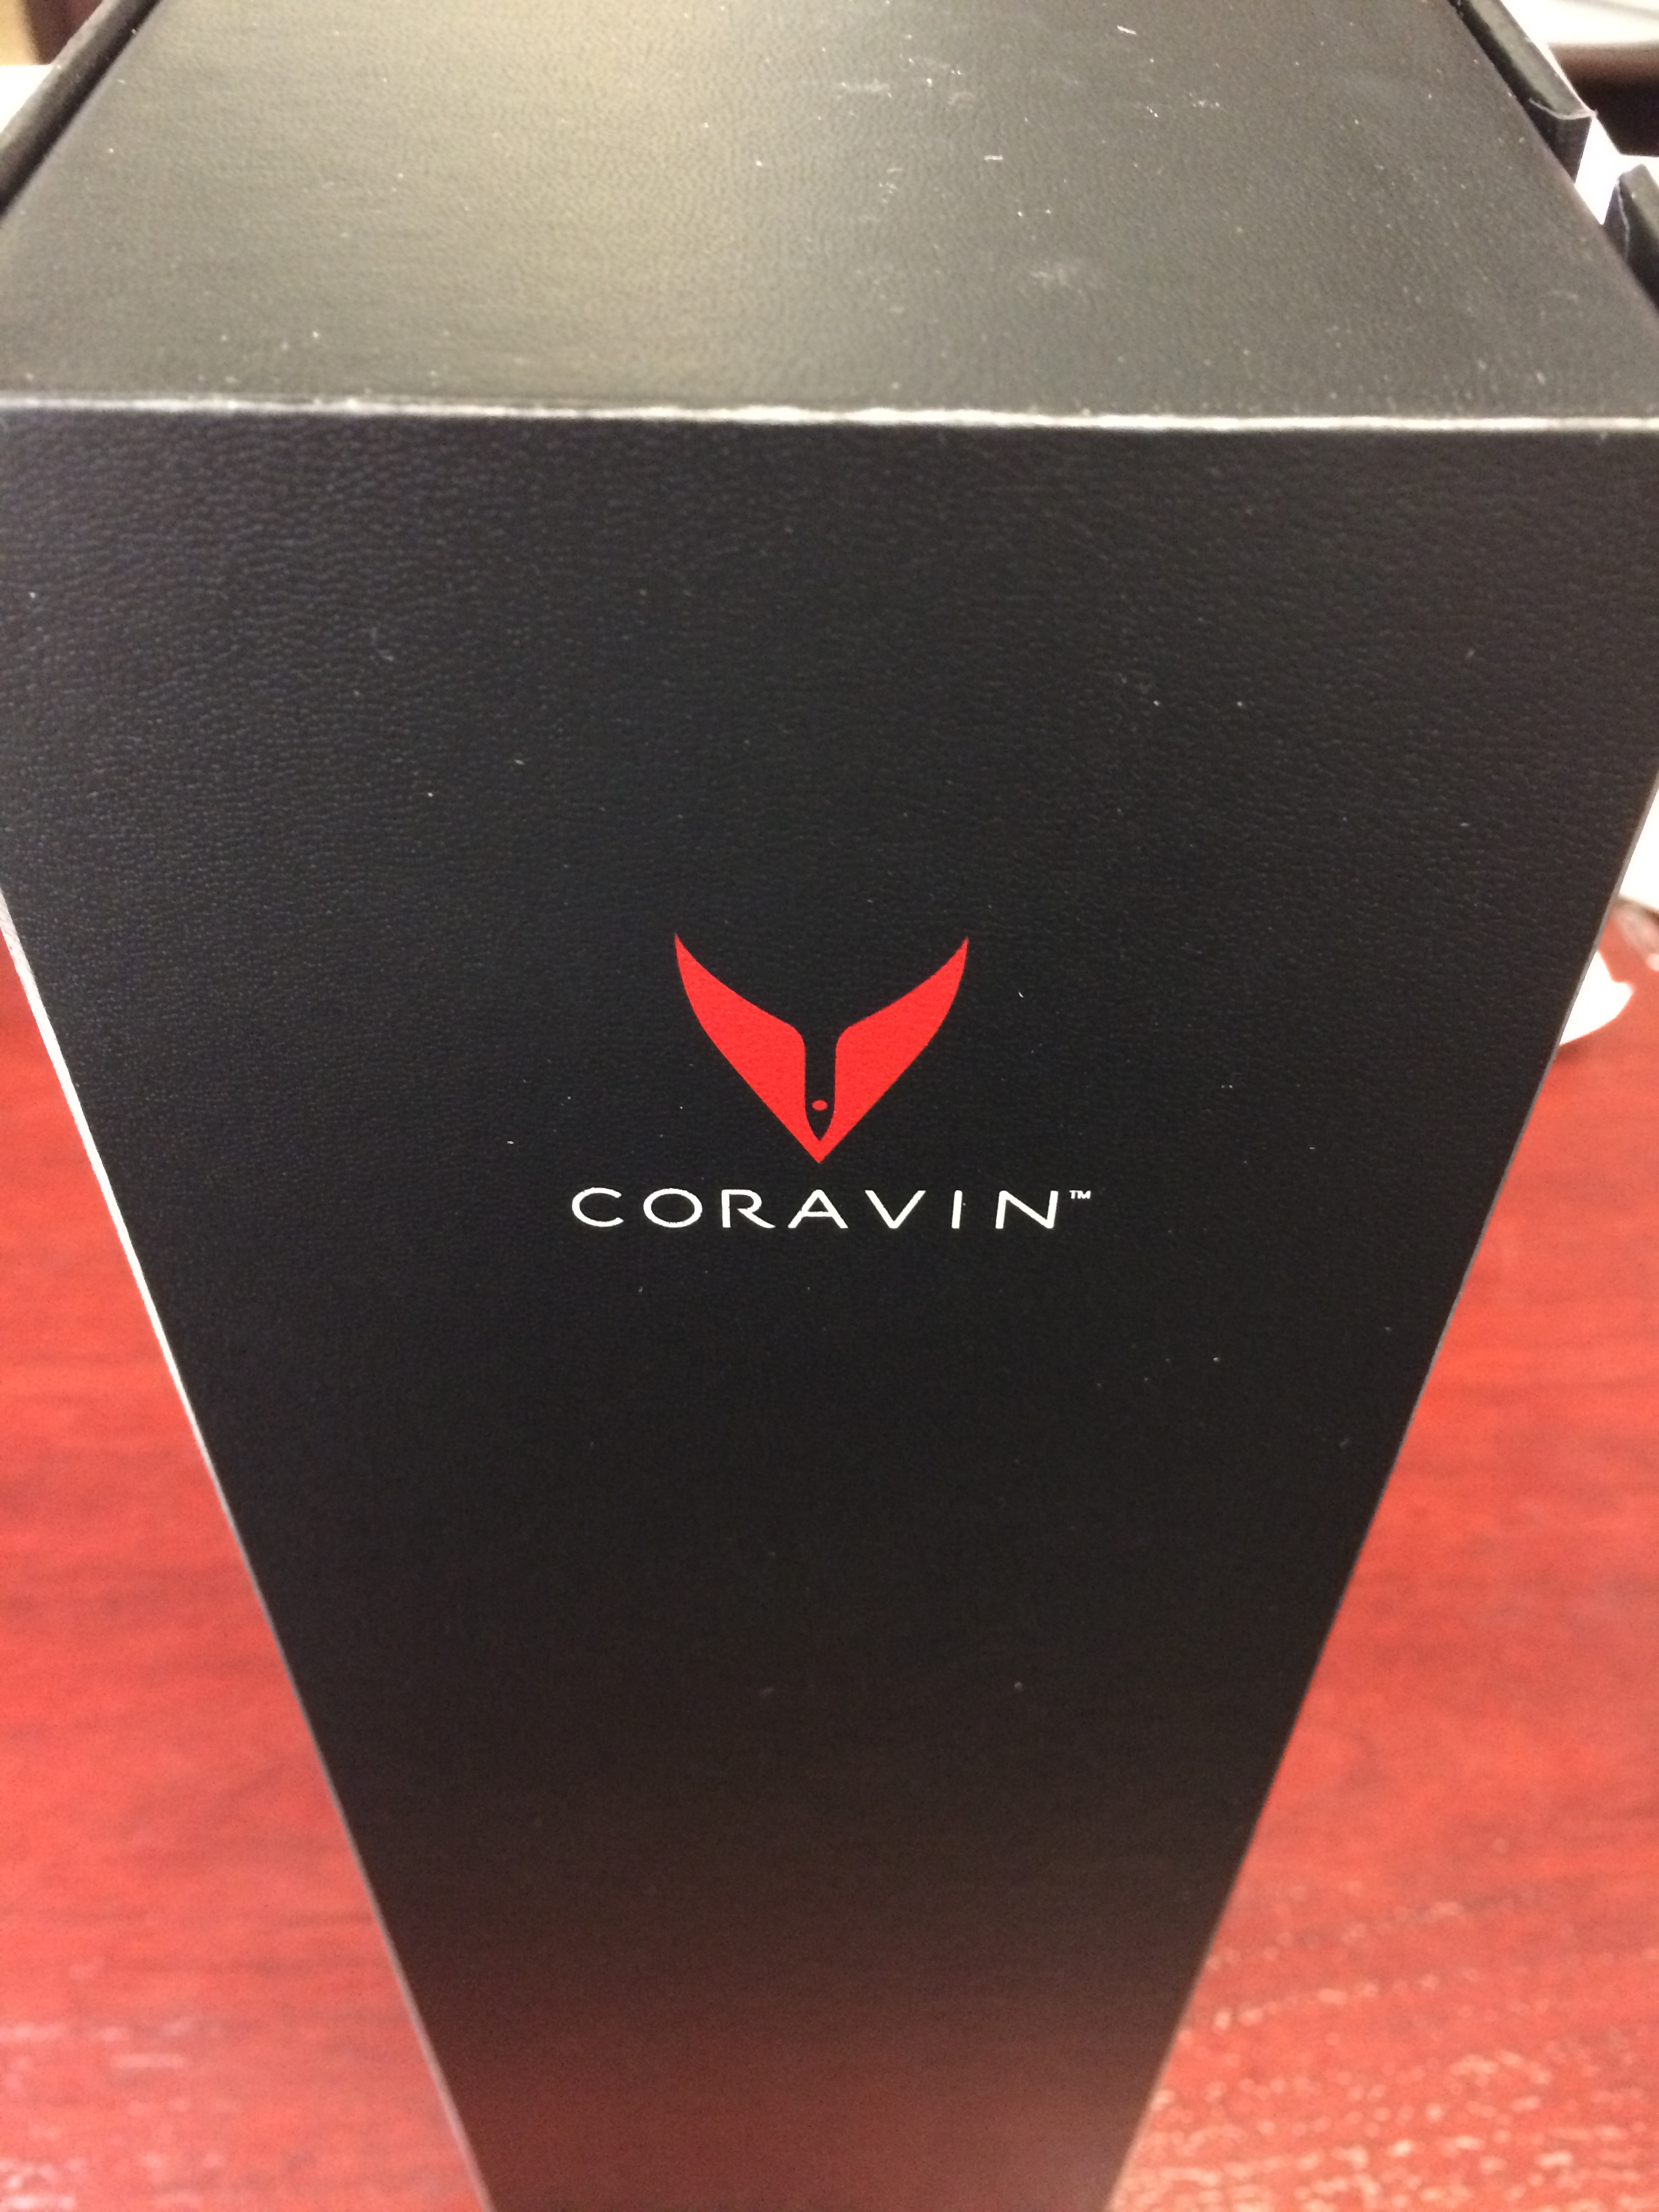 The Great Coravin Test Part 2 Initial Tasting Report